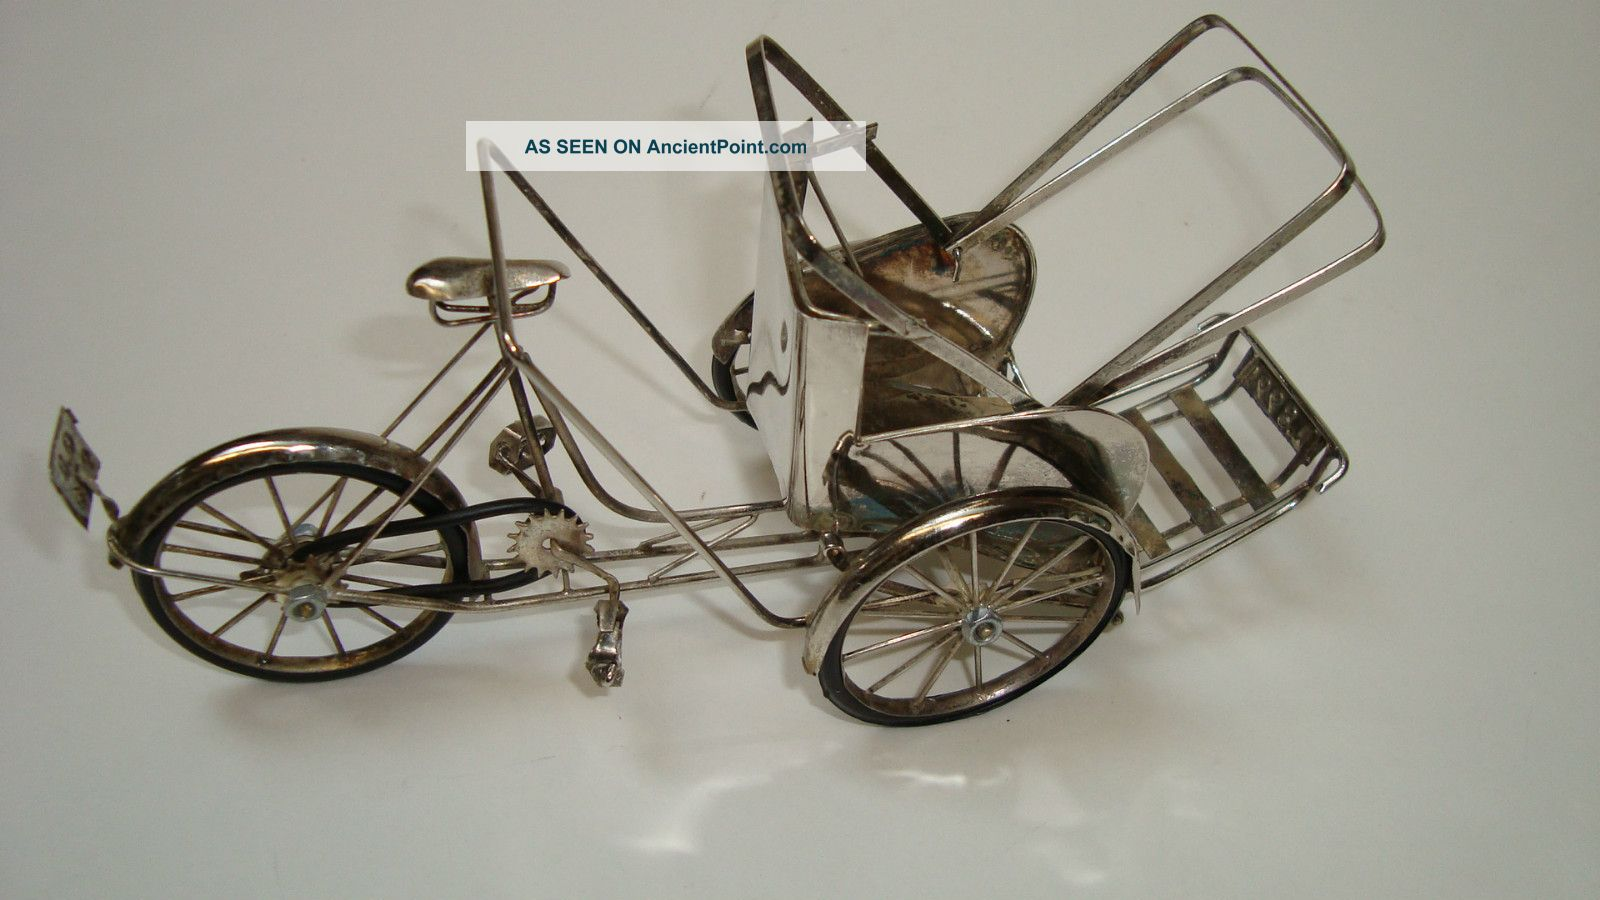 Miniature Oriental?.  8999 Silver Miniature Bicycle Rickshaw Asia photo